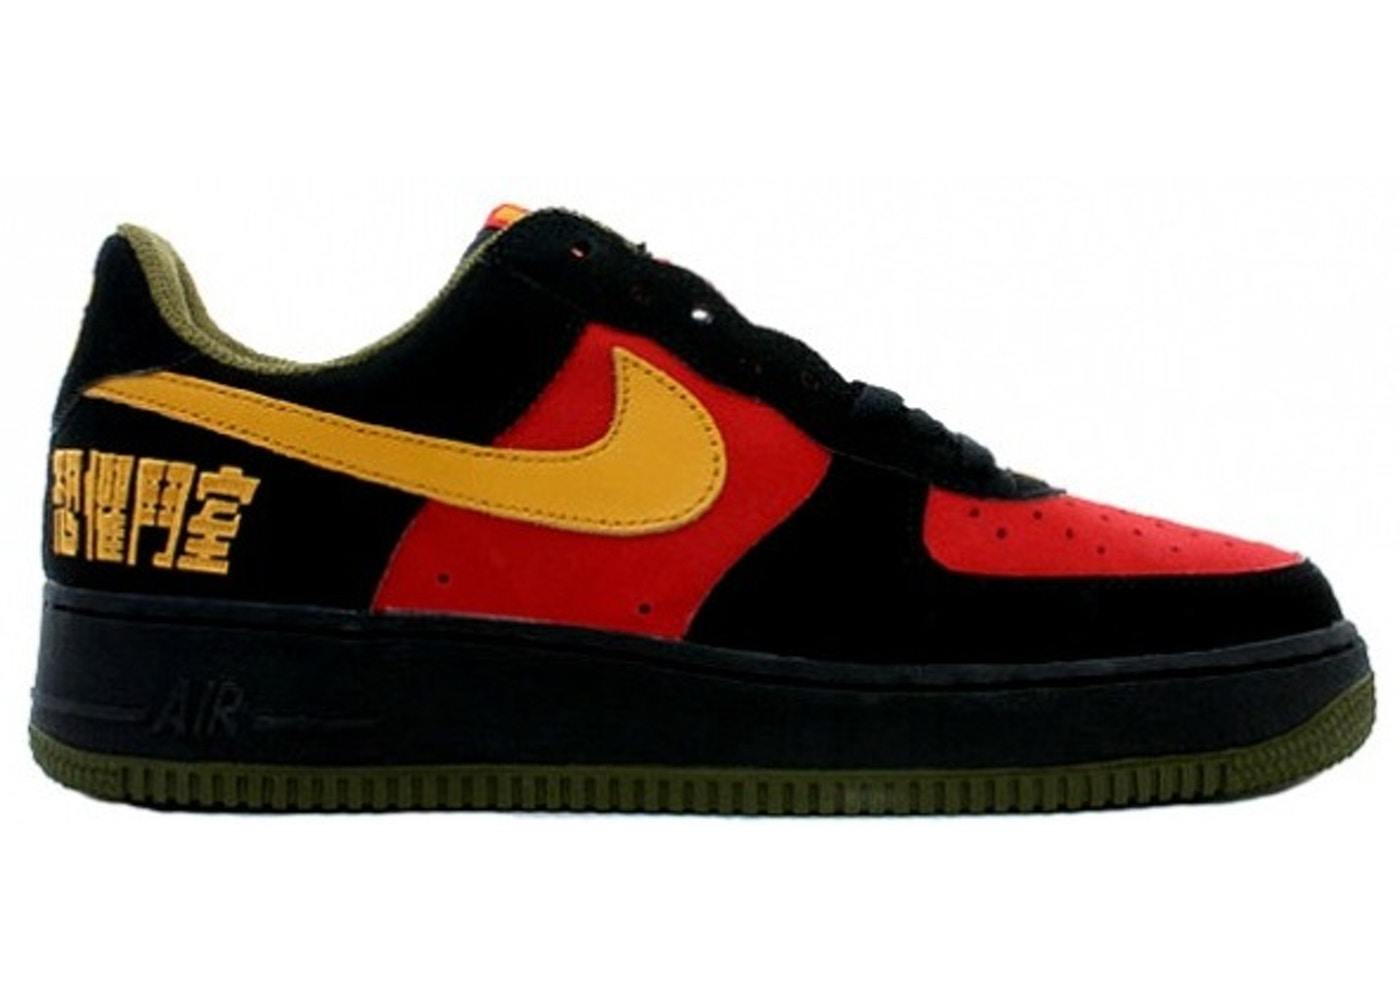 92bc47ca1f4 Nike Air Force 1 Shoes - Last Sale